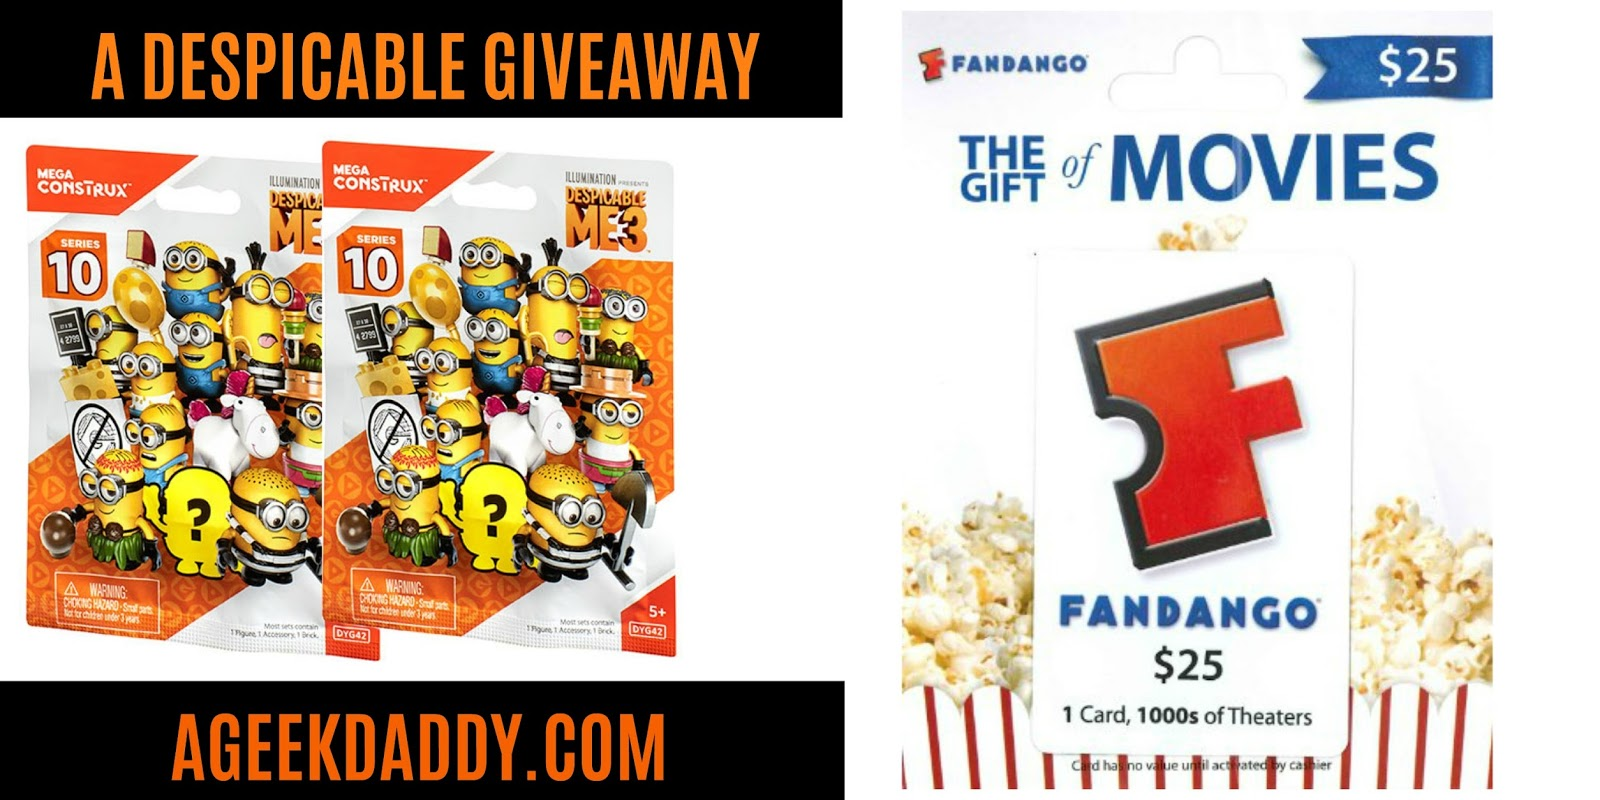 A geek daddy a despicable giveaway ill be giving away to one lucky randomly selected winner a 25 fandango gift card to xflitez Gallery